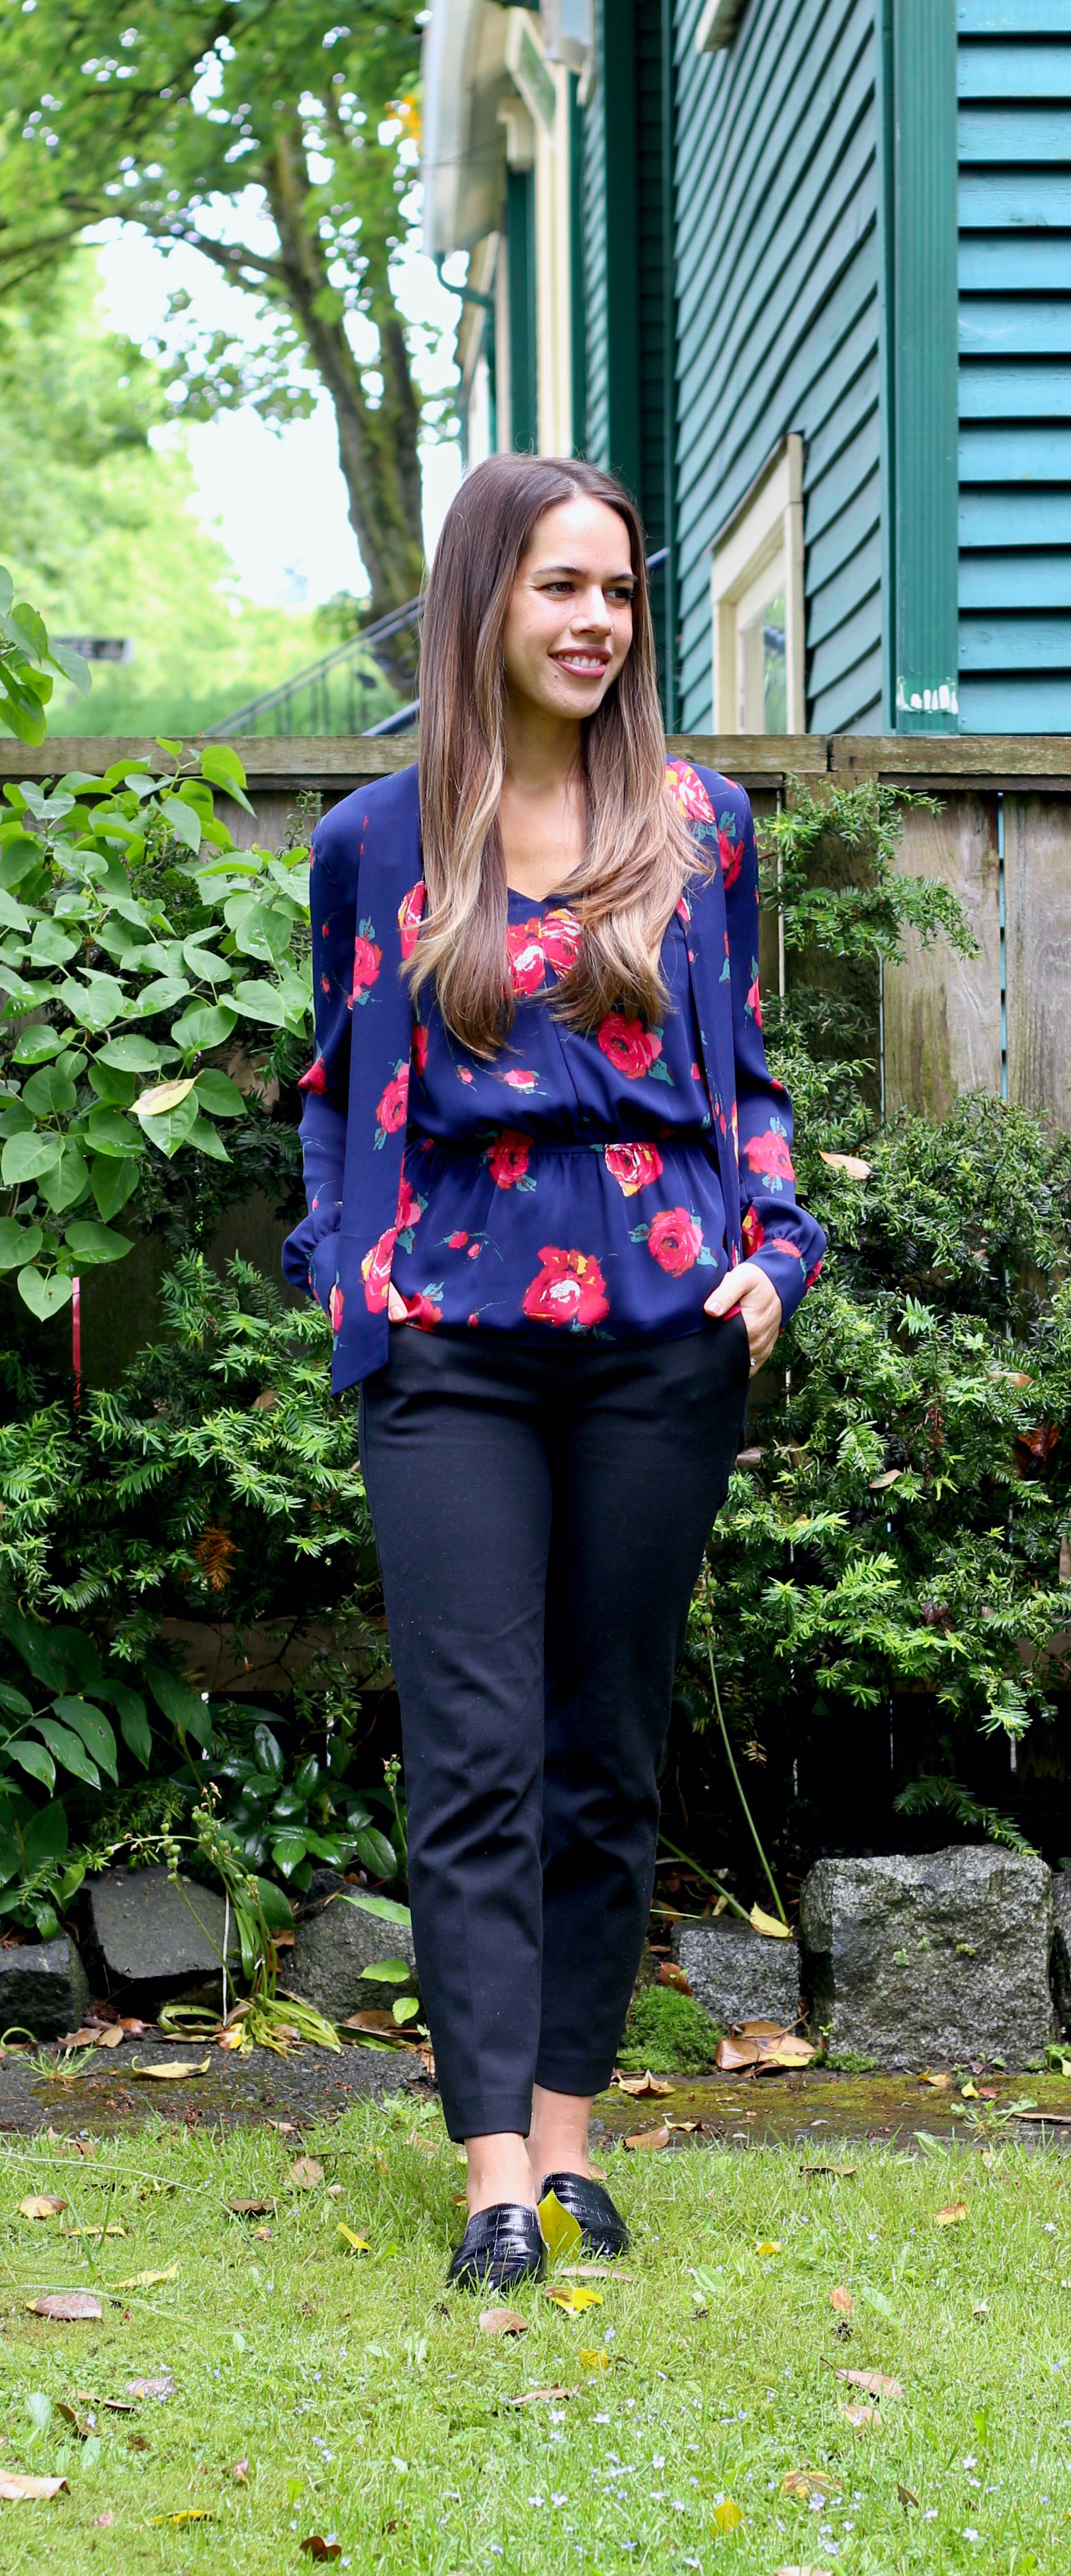 Jules in Flats - Tie Neck Floral Peplum Blouse (Business Casual Workwear on a Budget)